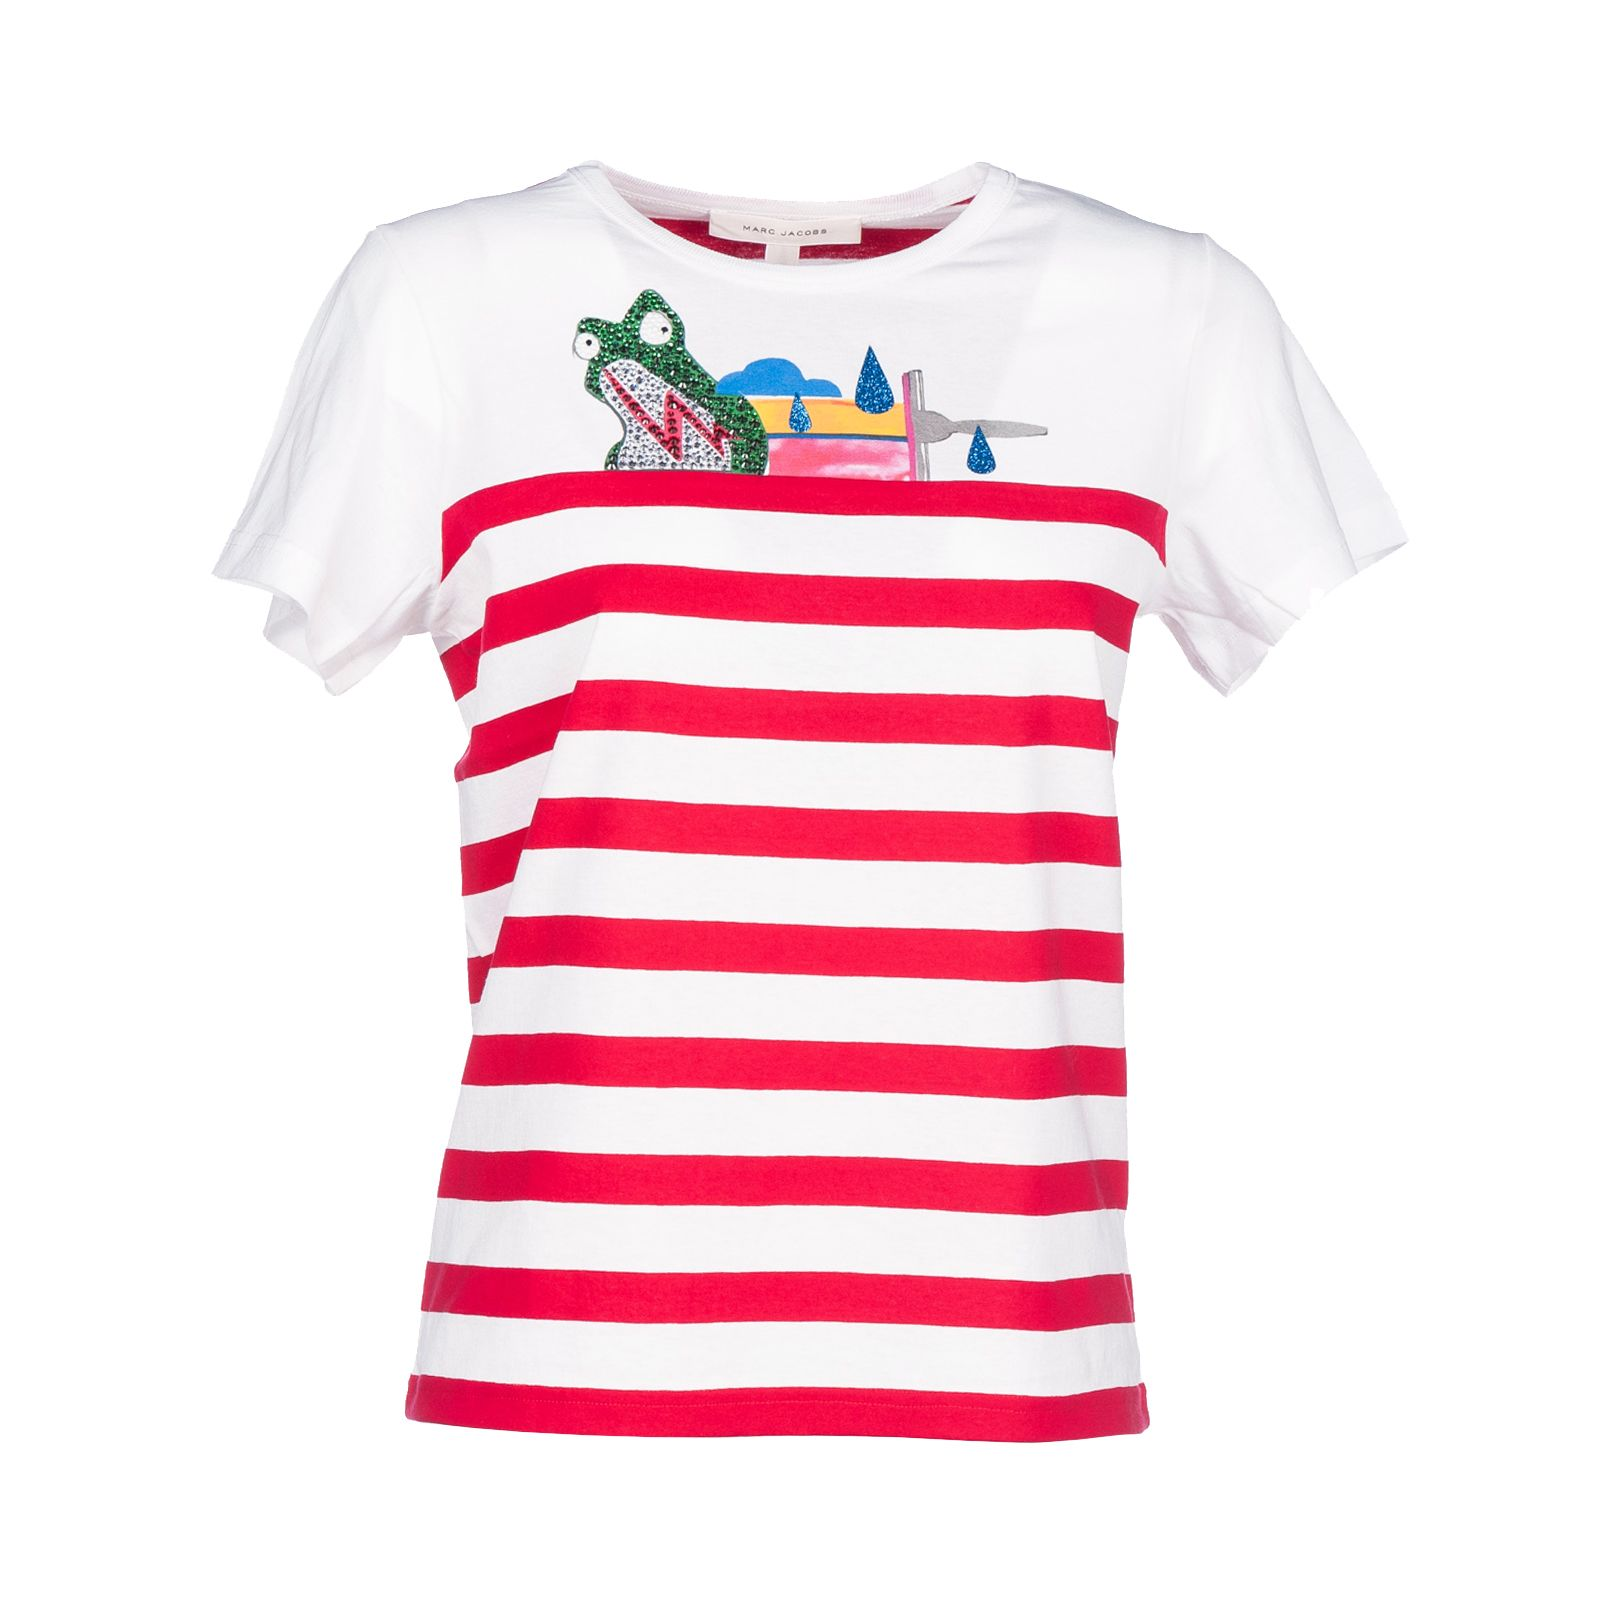 Marc Jacobs Striped T-shirt